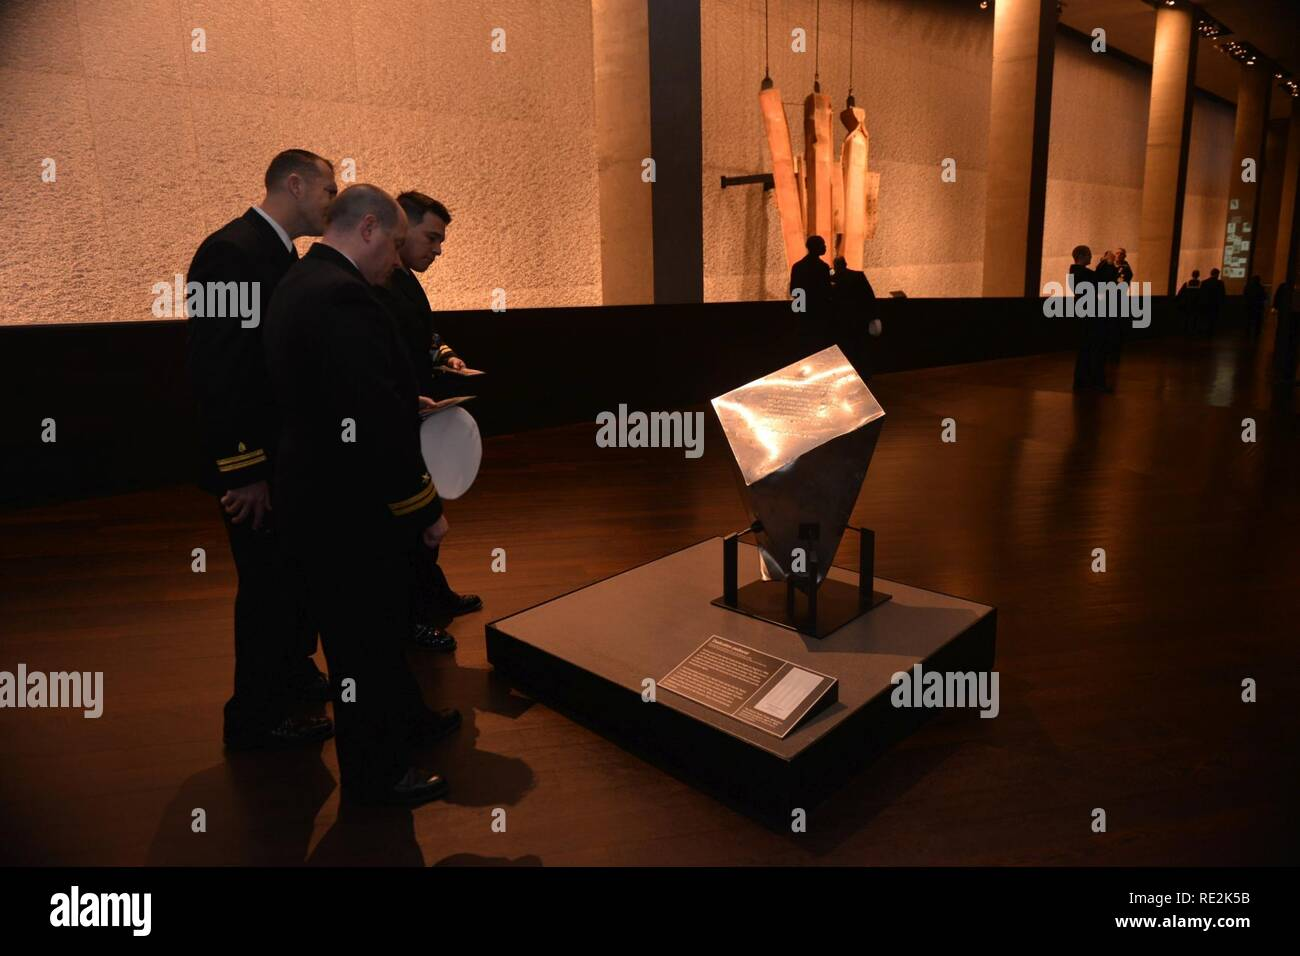 NEW YORK (Nov. 12, 2016) - Sailors attached to amphibious assault ship USS Iwo Jima (LHD 7) view the Dedication Pedestal at the National 9/11 Memorial & Museum at the World Trade Center. Iwo Jima is participating in Veterans Week New York City 2016 to honor the service of all our nation's veterans. The ship recently returned from the humanitarian assistance mission to Haiti in the aftermath of Hurricane Matthew - Stock Image